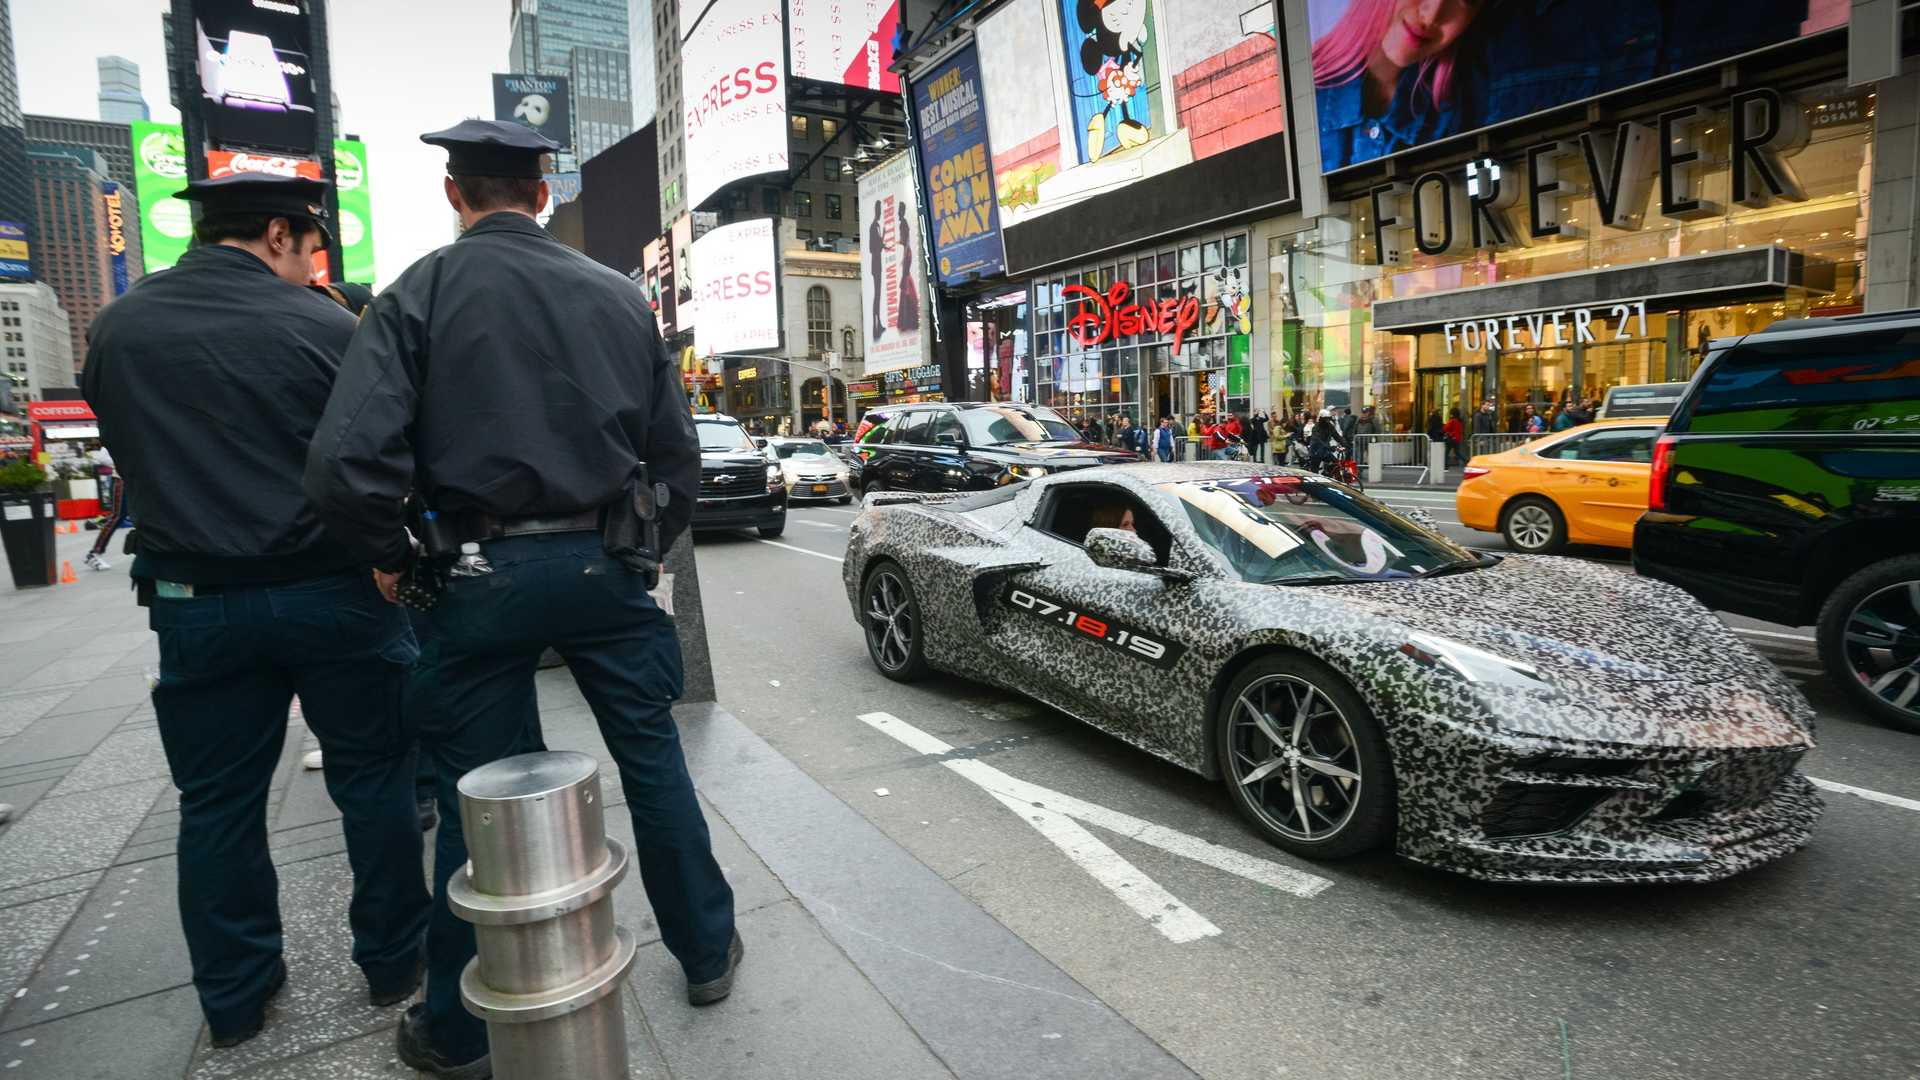 c8-corvette-announcement-new-york